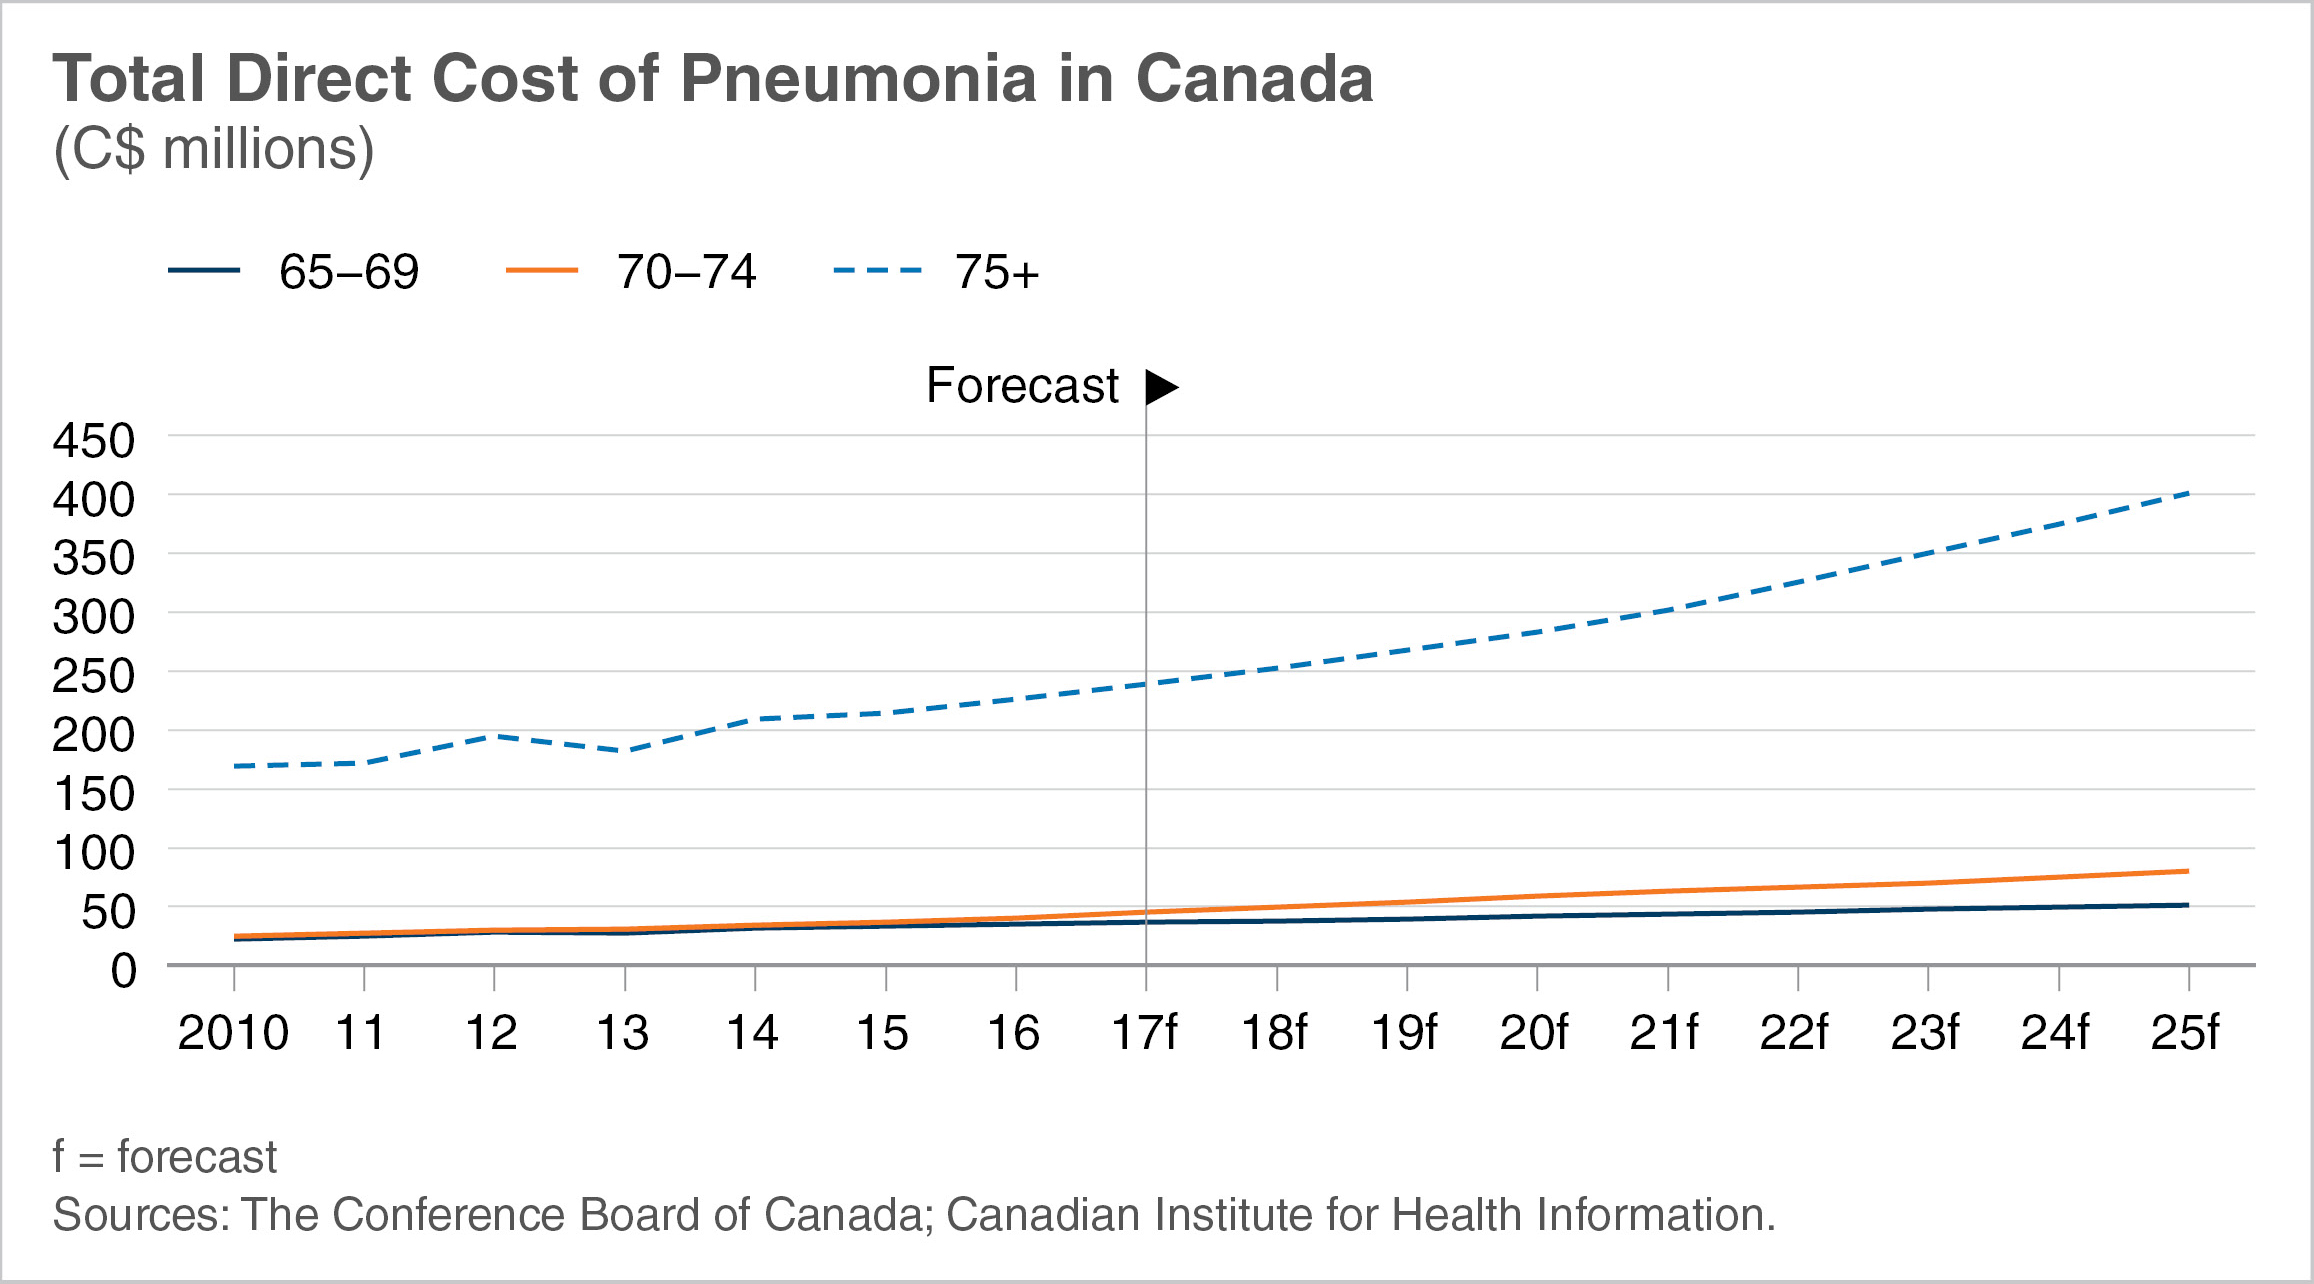 Chart showing total direct cost of pneumonia in Canada